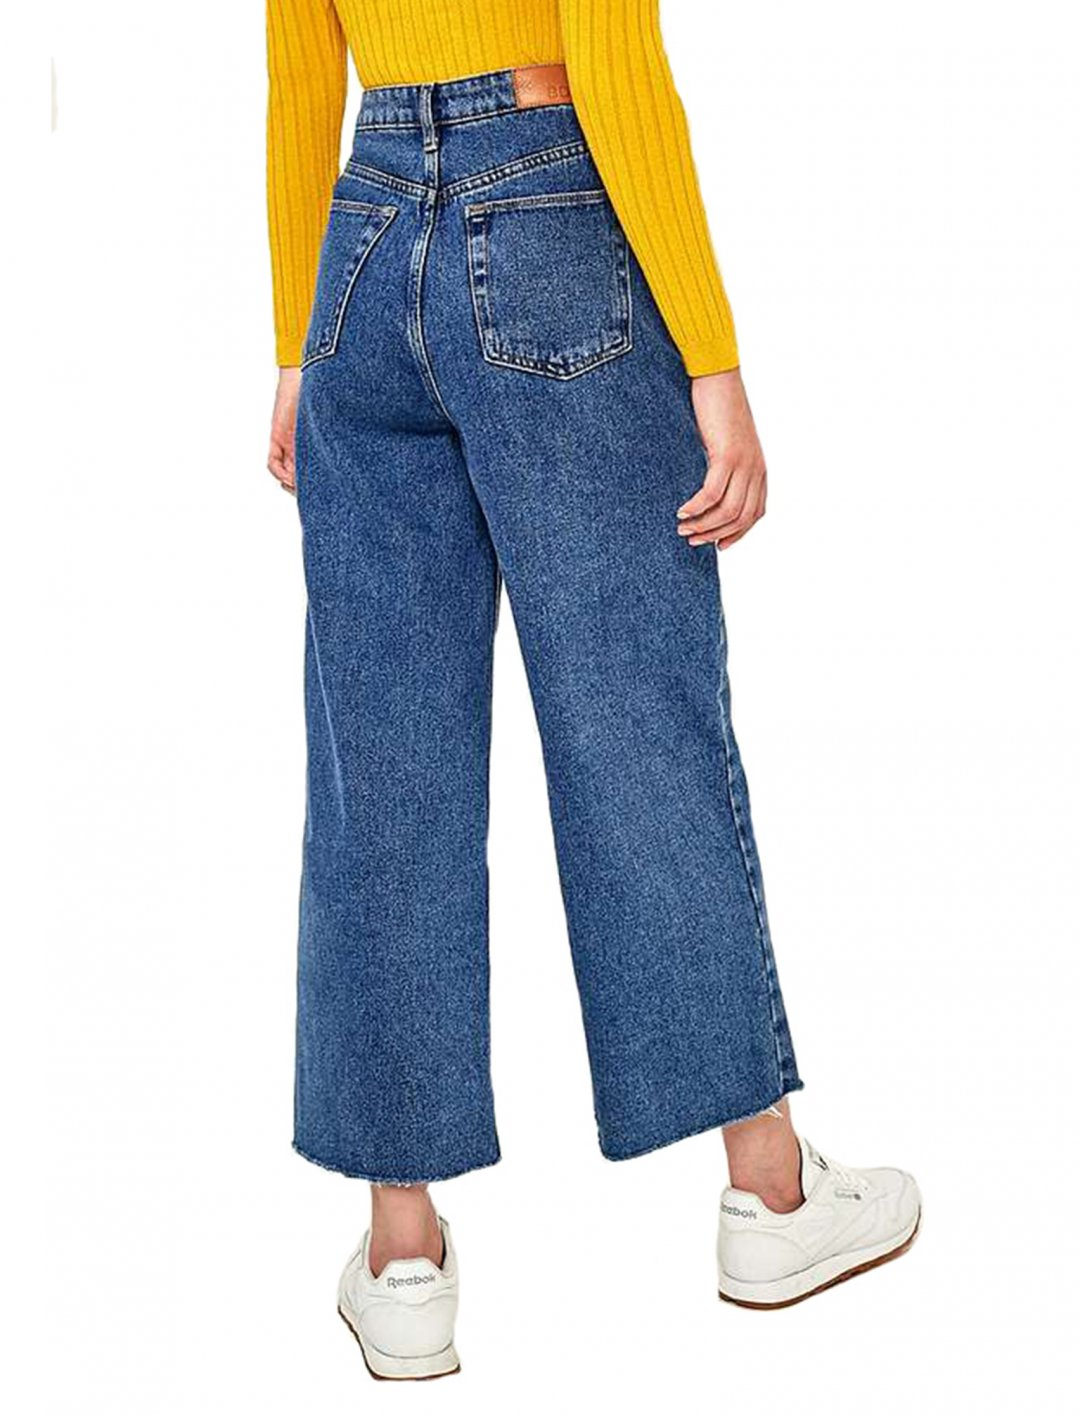 Wide Leg Jeans Clothing UrbanOutfitters